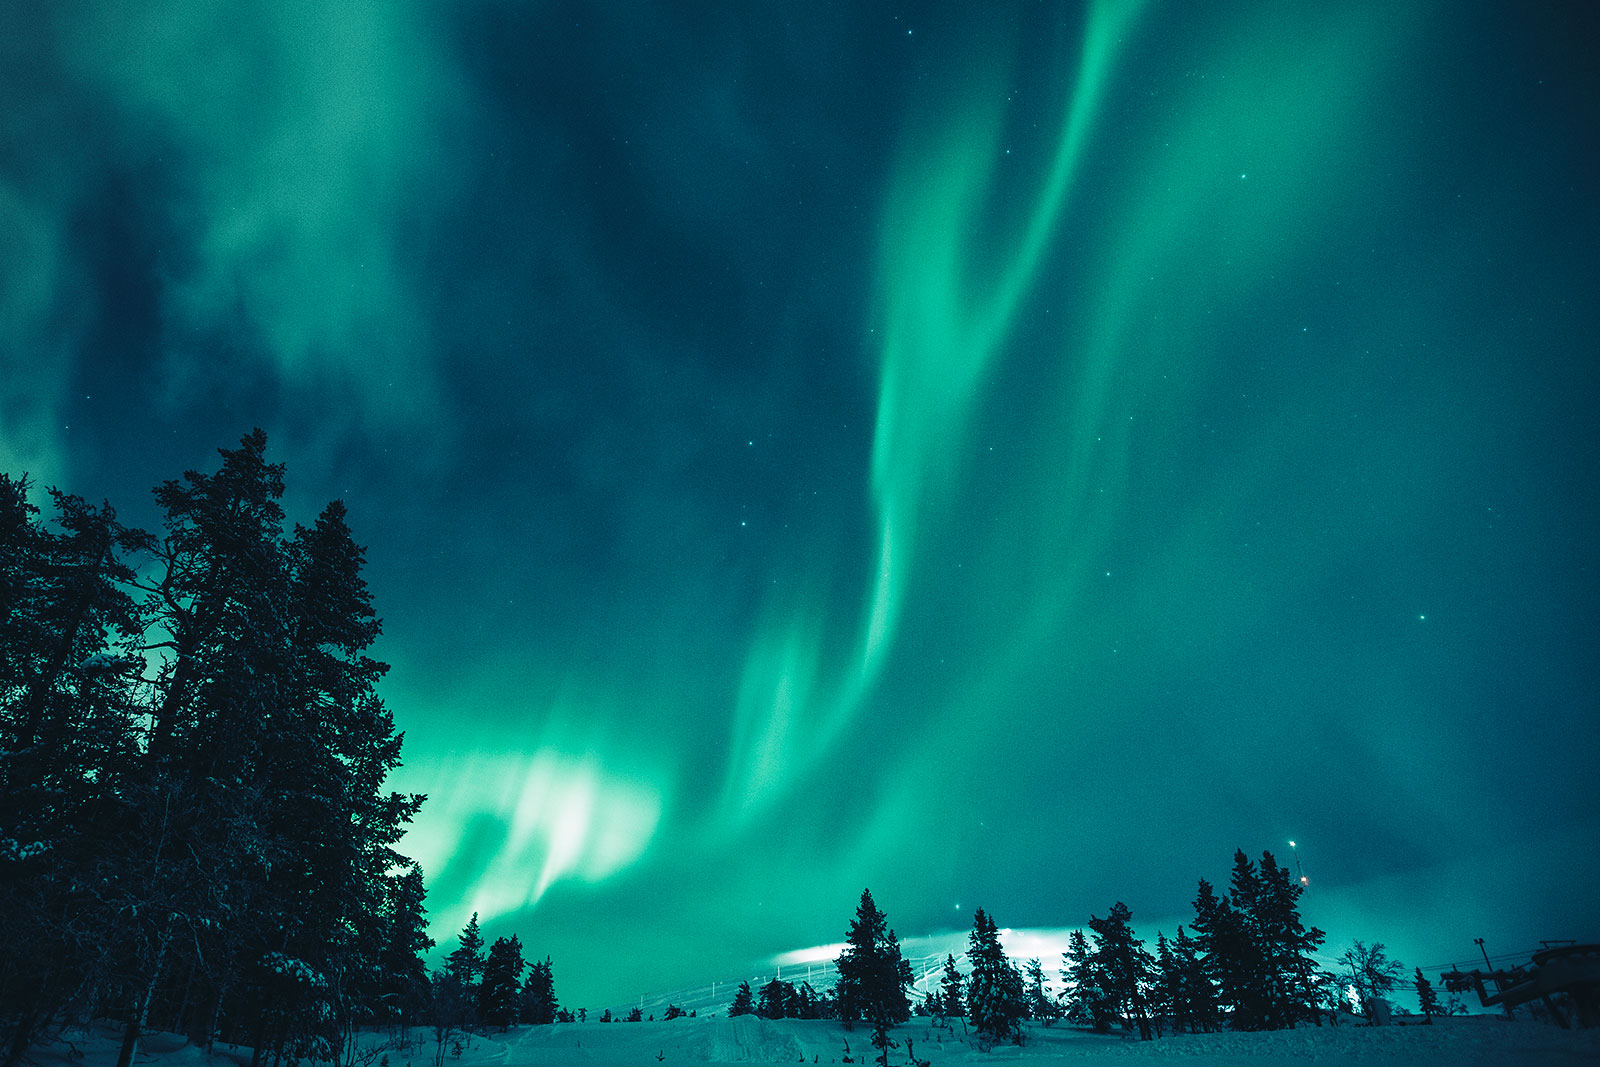 Northern lights [Photo: Hannes Becker]